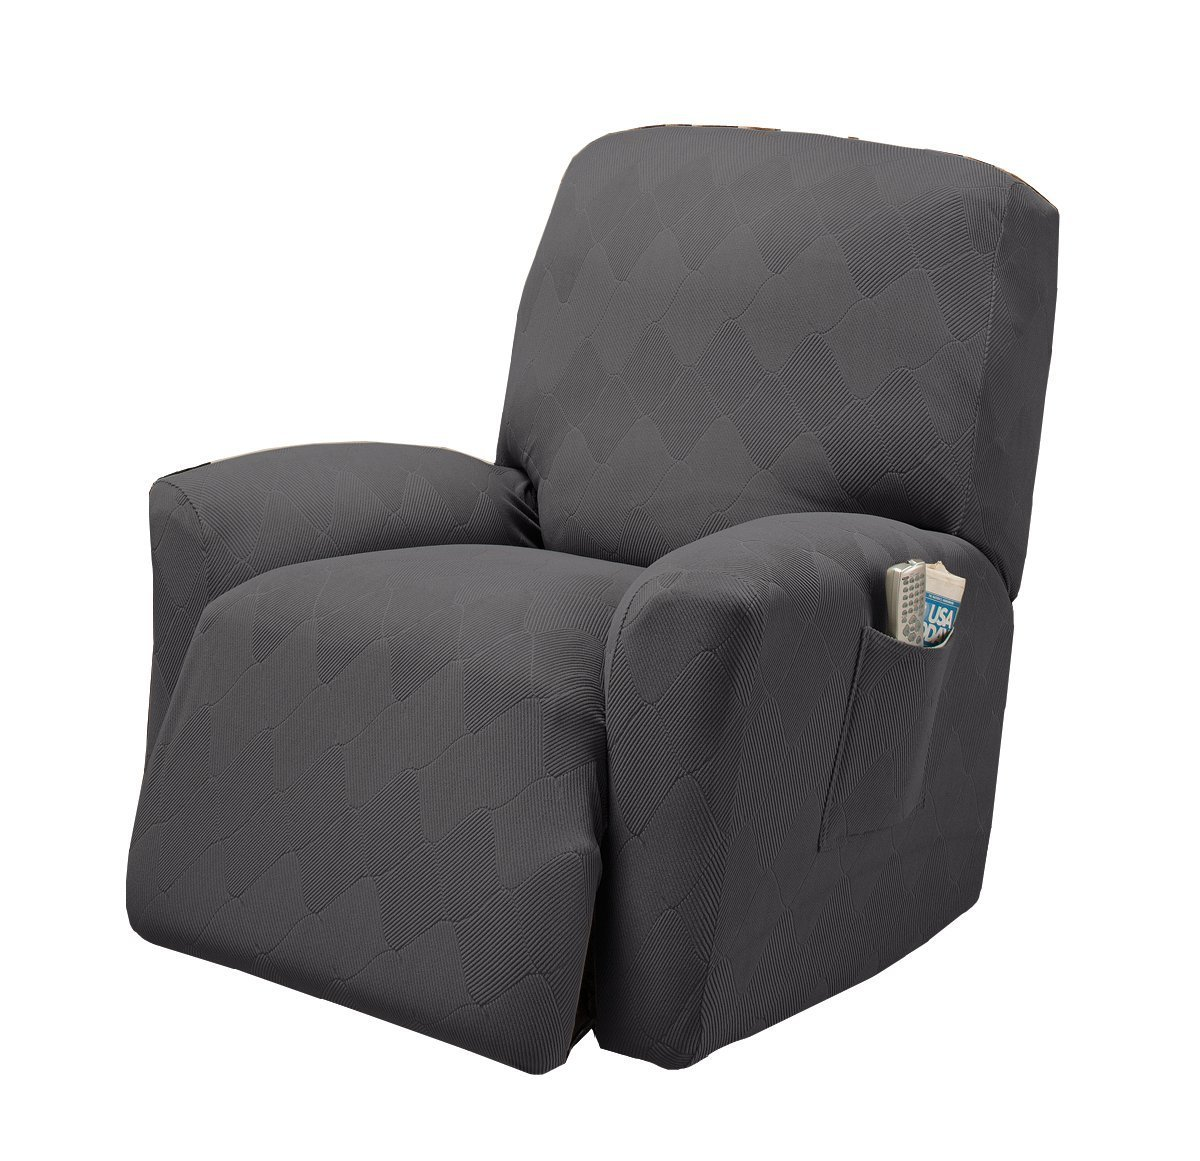 4 Best Lazy Boy Recliner Slipcover  sc 1 th 221 & Lazyboy Recliners Review and Guide Online islam-shia.org